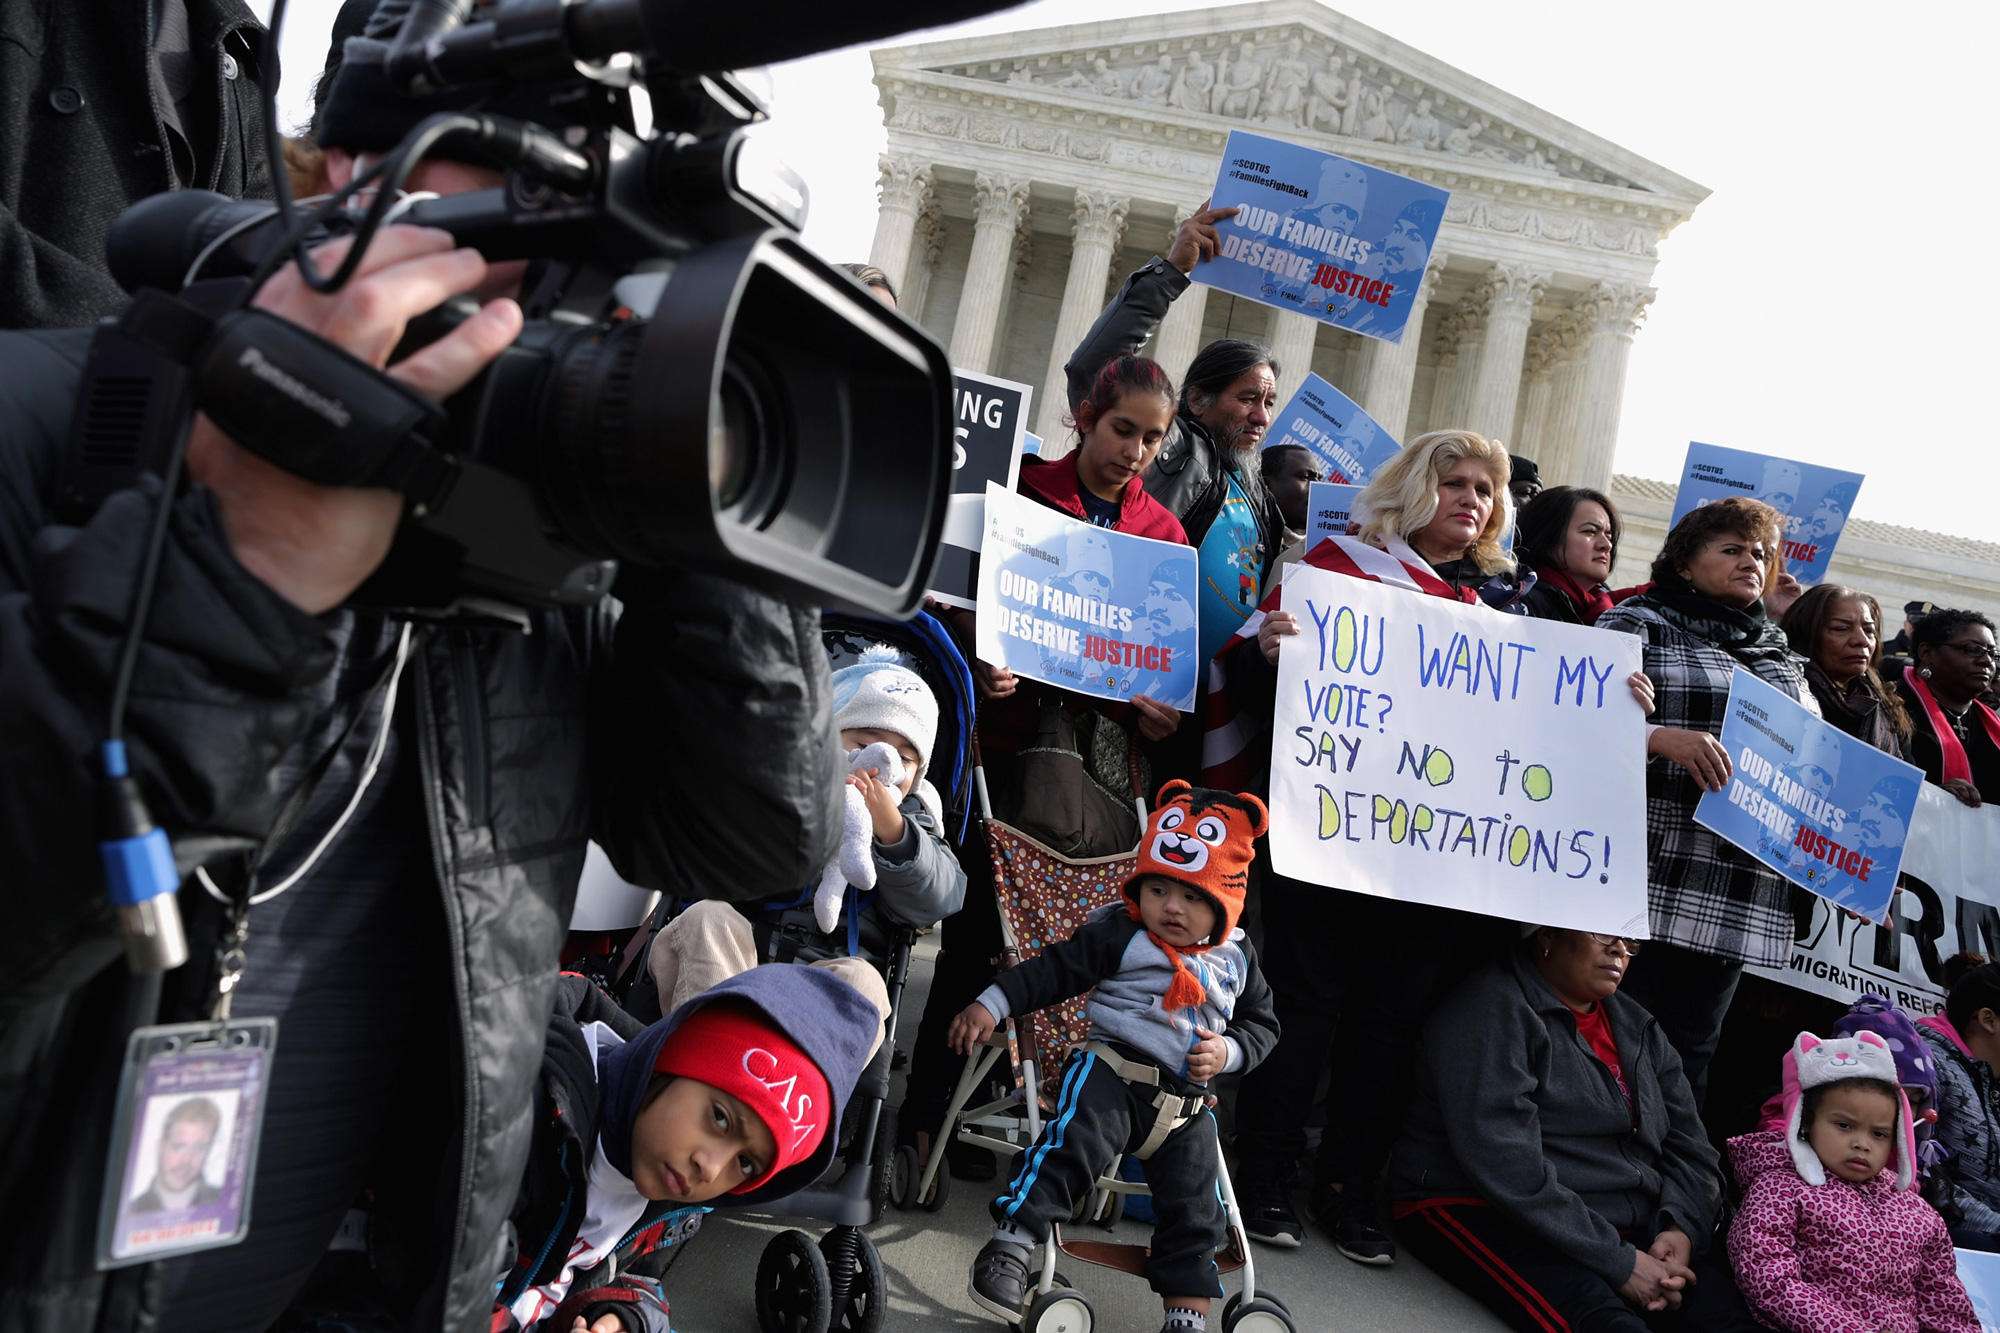 About fifty pro-immigration reform demonstrators gathered for a rally outside the United States Supreme Court January 15, 2016 in Washington, DC. Organized by immigraiton advocacy group CASA, the demonstrators called on the Supreme Court to take up and overrule a lower court's ruling against President Barack Obama's 2014 immigration executive actions, including the Deferred Action for Parental Accountability (DAPA) program and expanded Deferred Action for Childhood Arrivals (DACA) guidelines. (Photo by Chip Somodevilla/Getty Images)